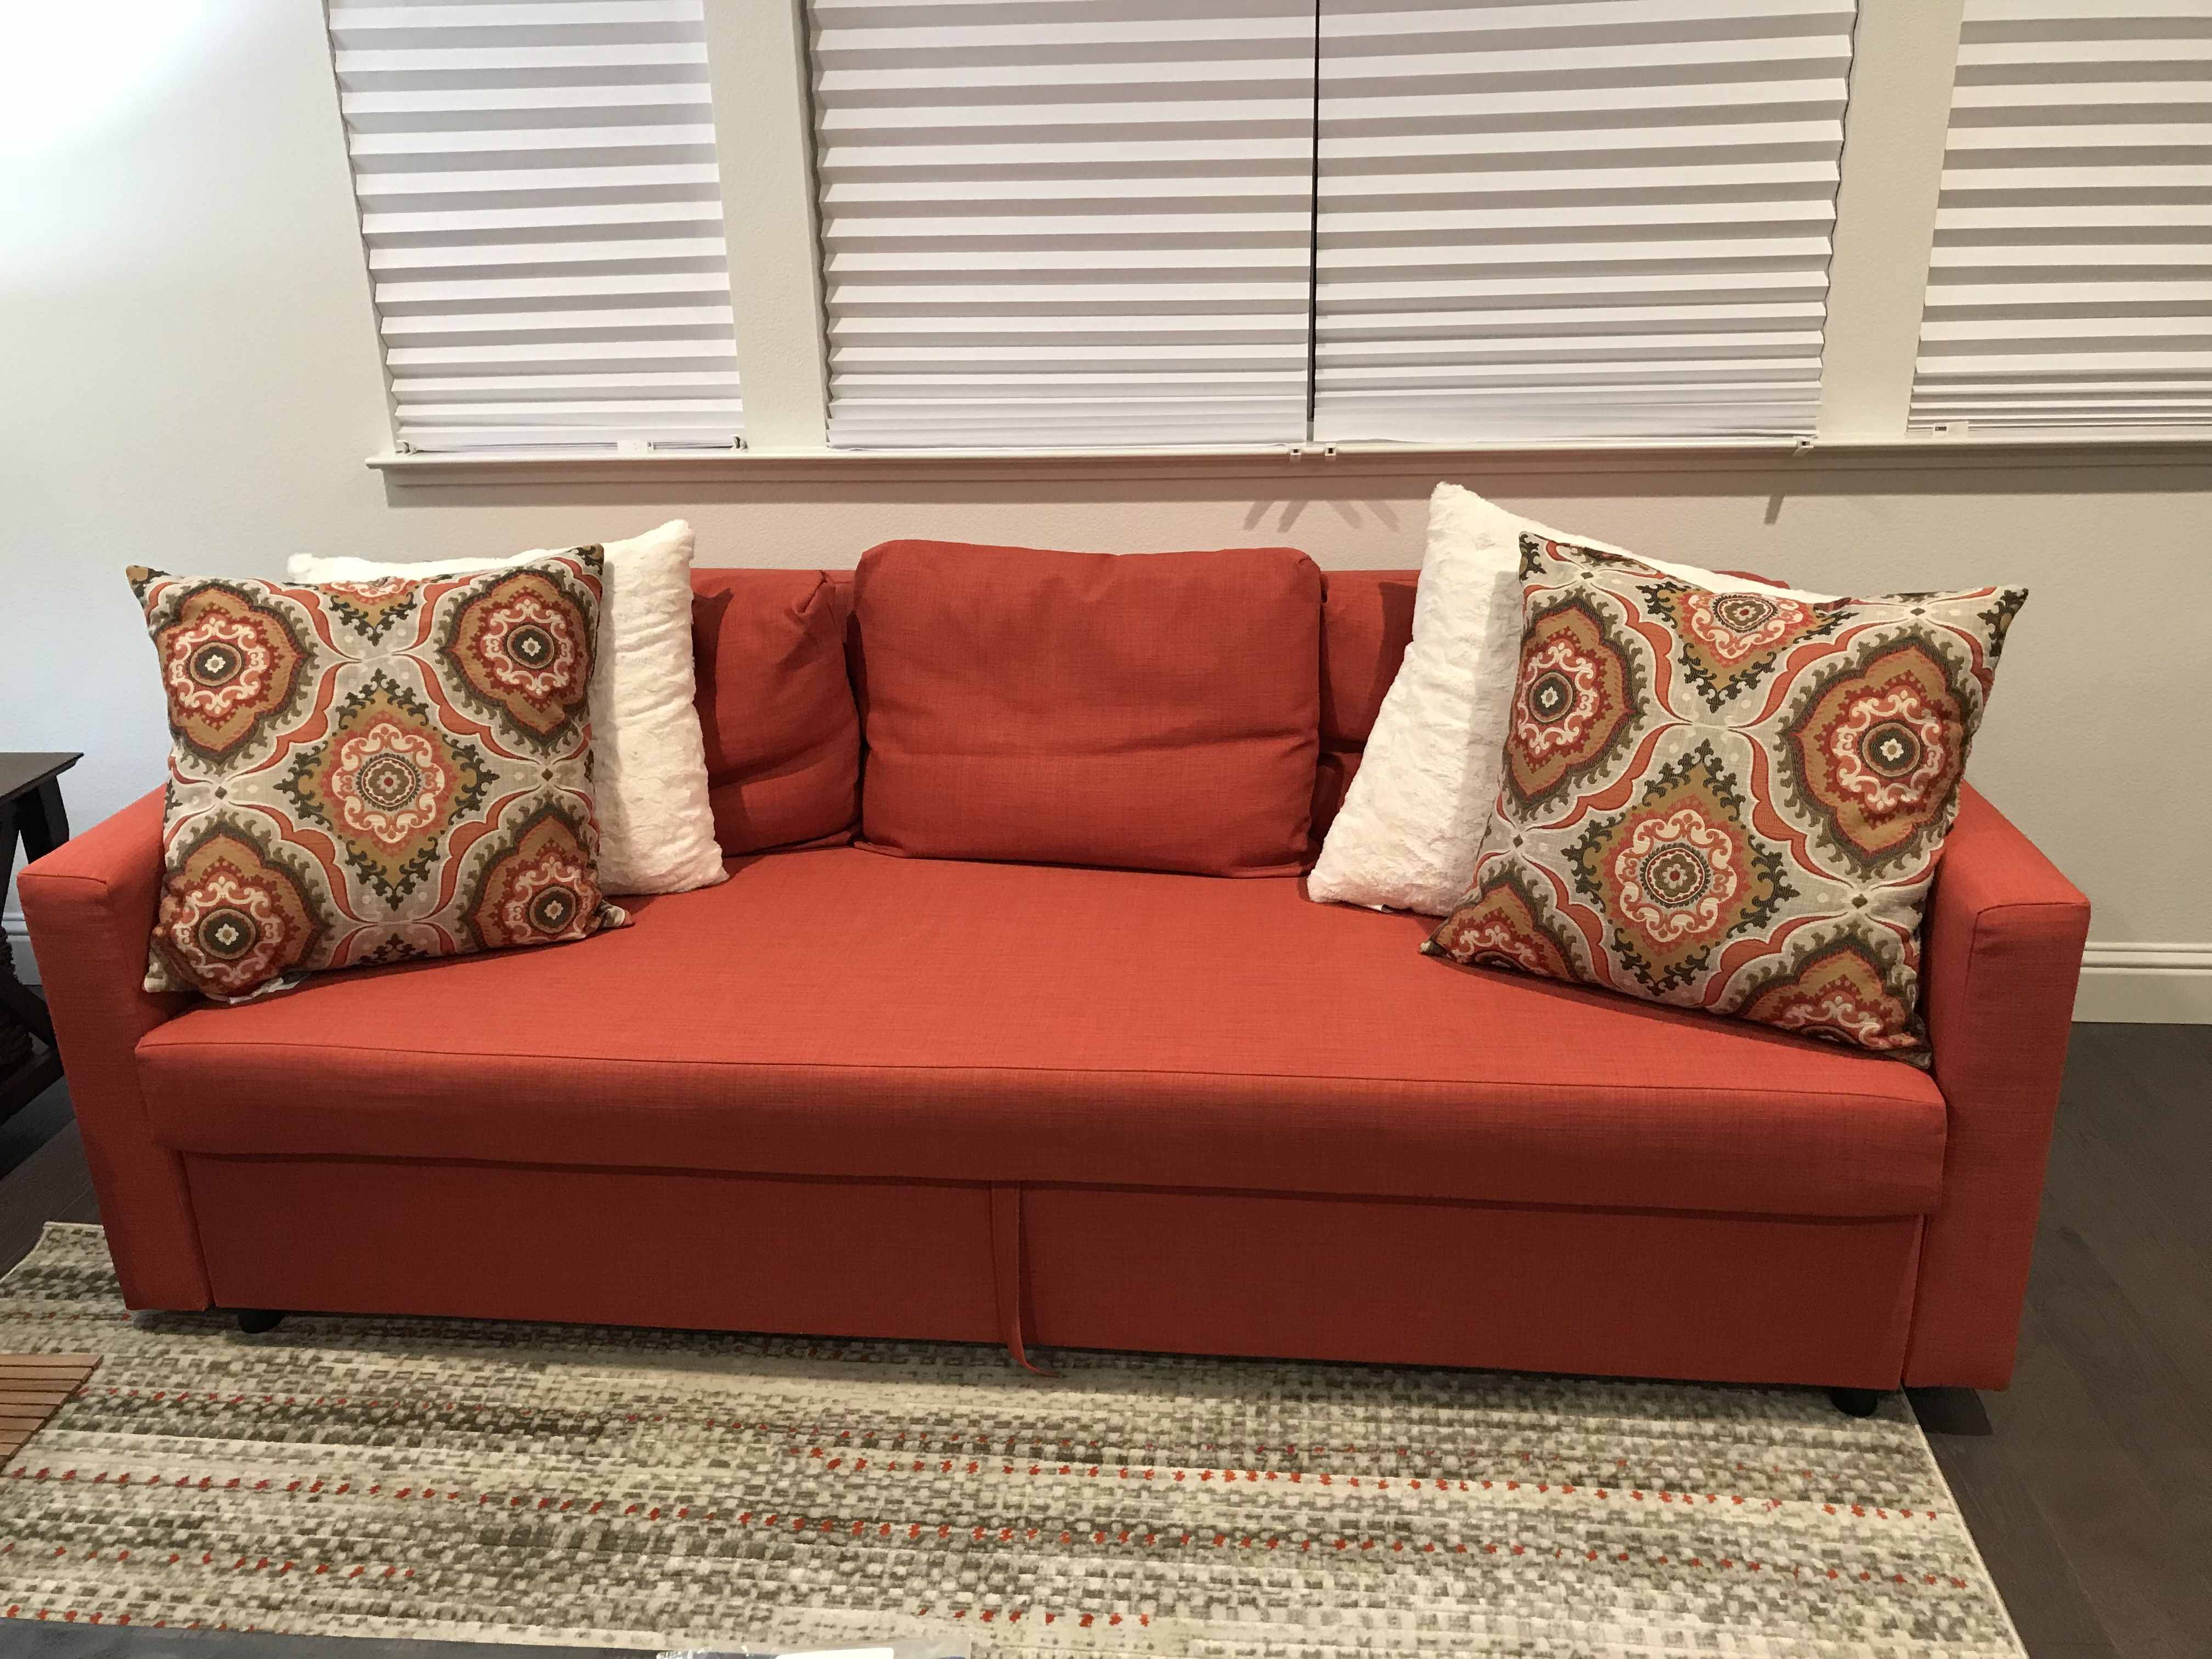 Best Burnt Orange Sofa Bed From Ikea Decorated With Oversized Pillows From Pier1 My Nap Zone 400 x 300